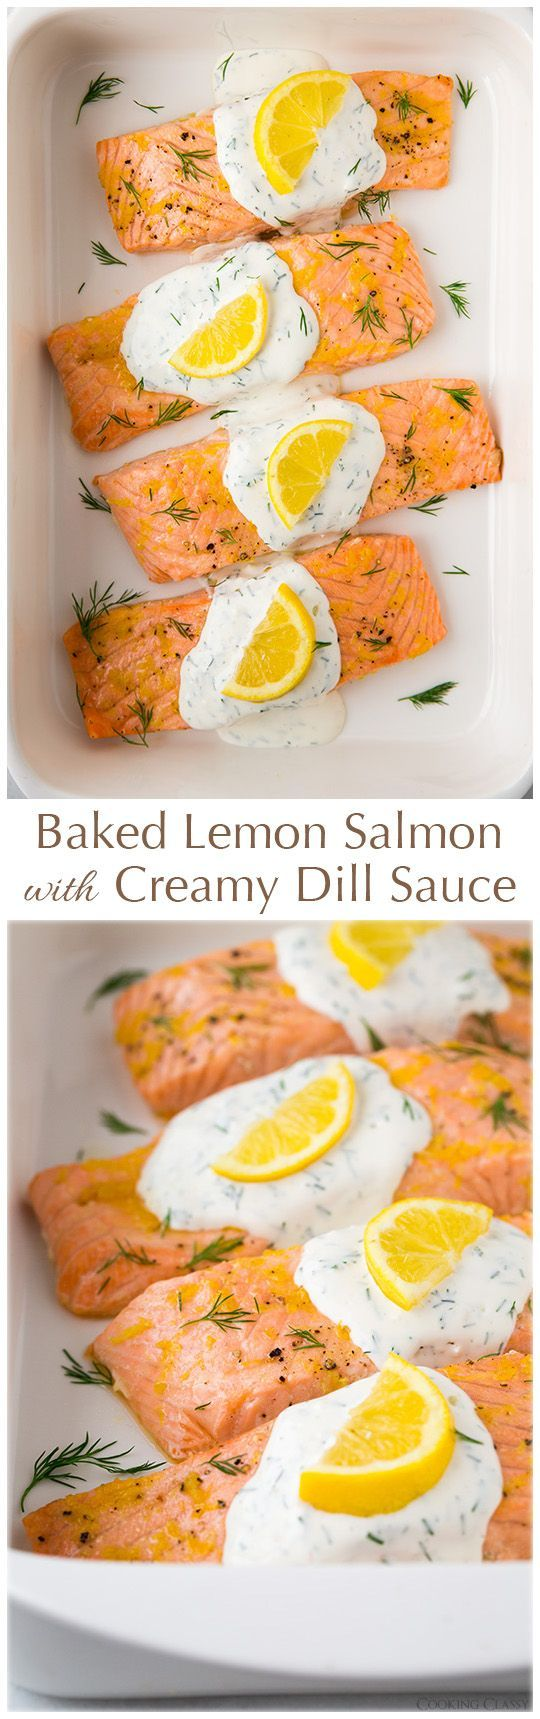 Baked Lemon Salmon With Creamy Dill Sauce This Salmon Is Awesome And It S Totally Healthy